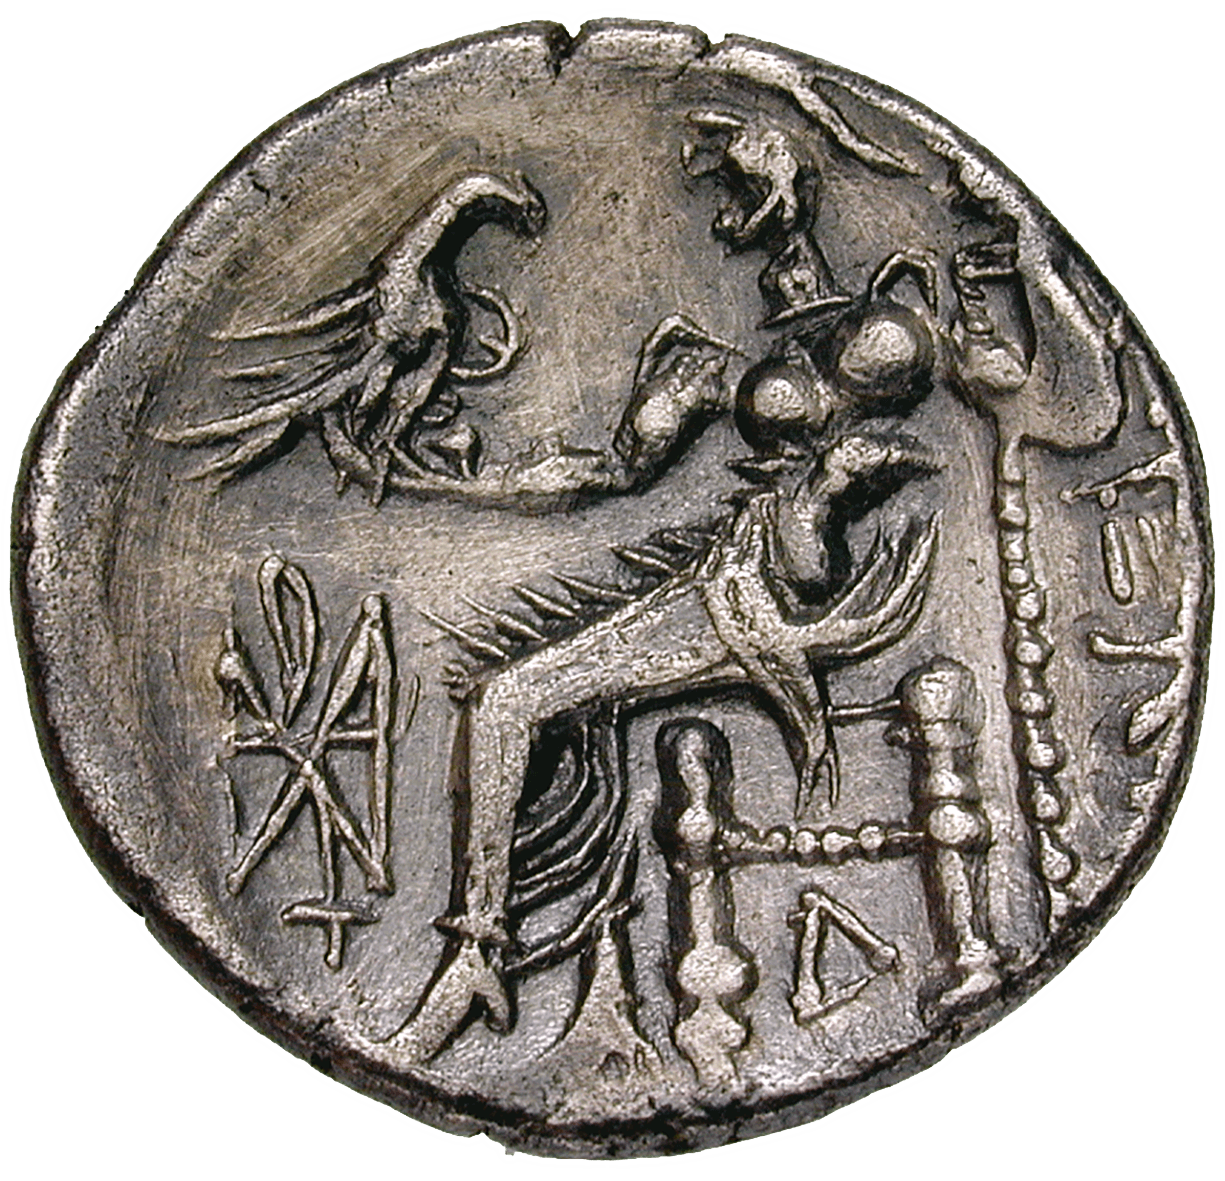 Thracia, Middle or Lower Danube Region, Drachm (reverse)